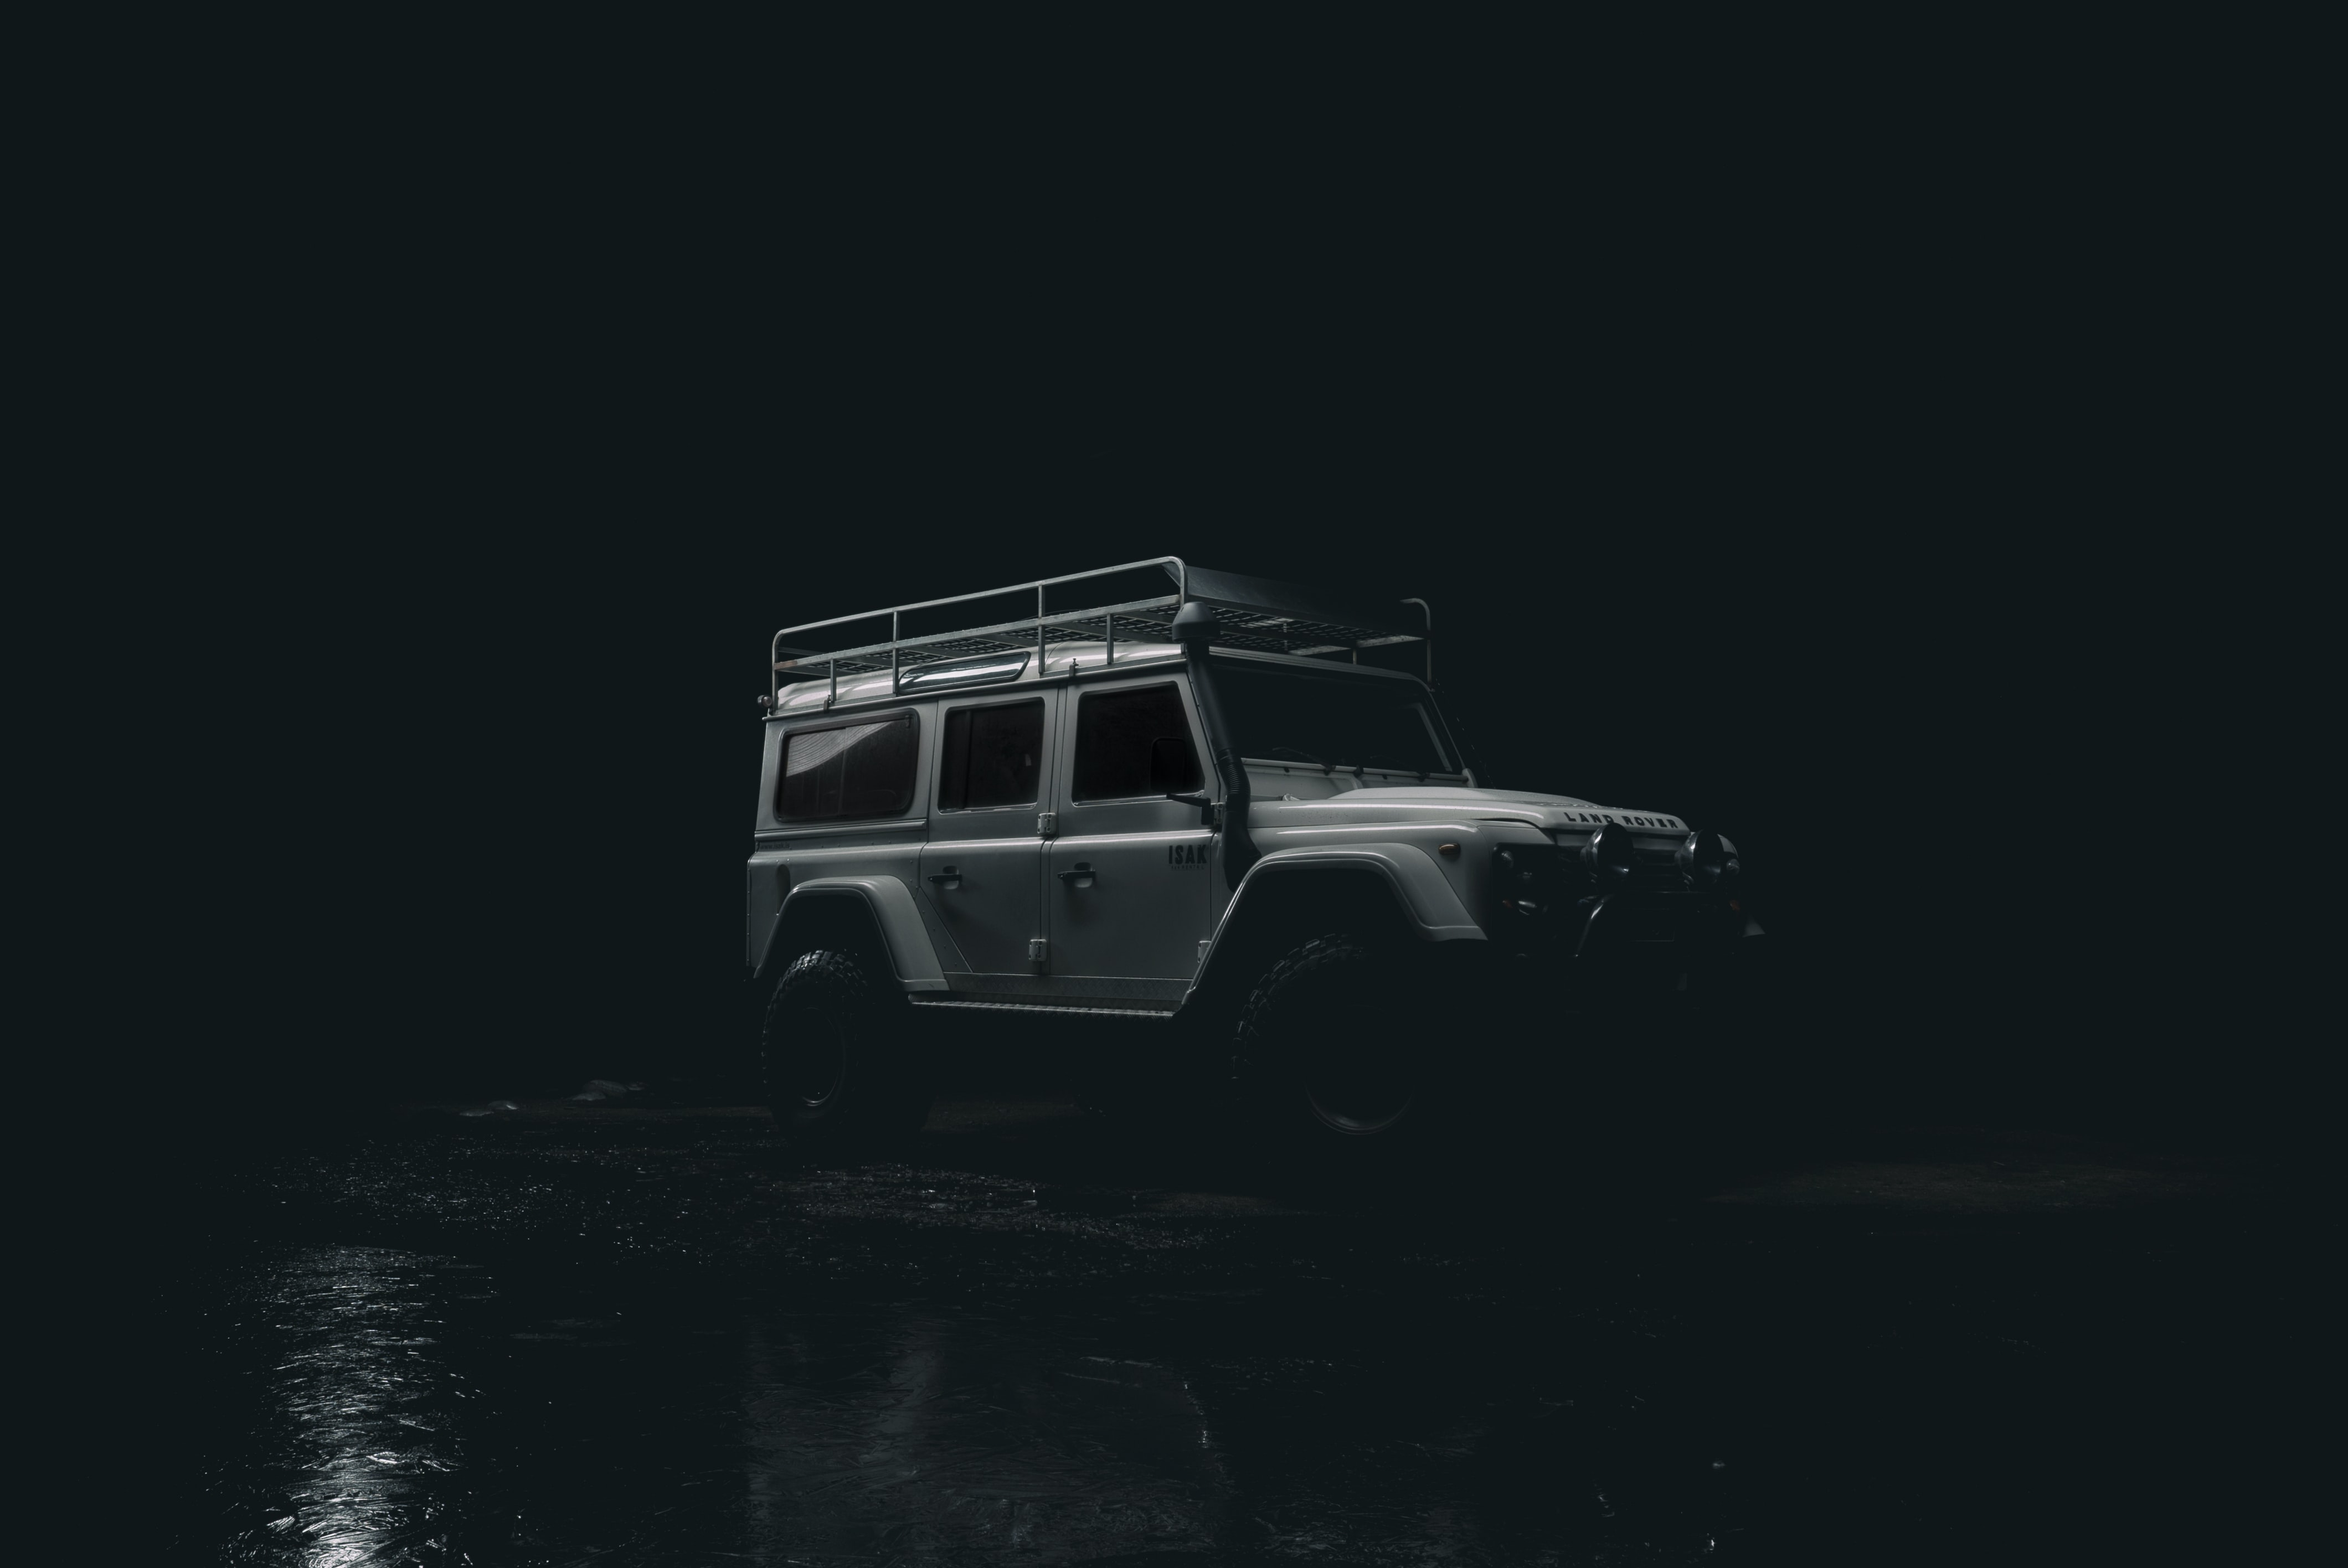 grey Mercedes-Benz G-Class during nighttime